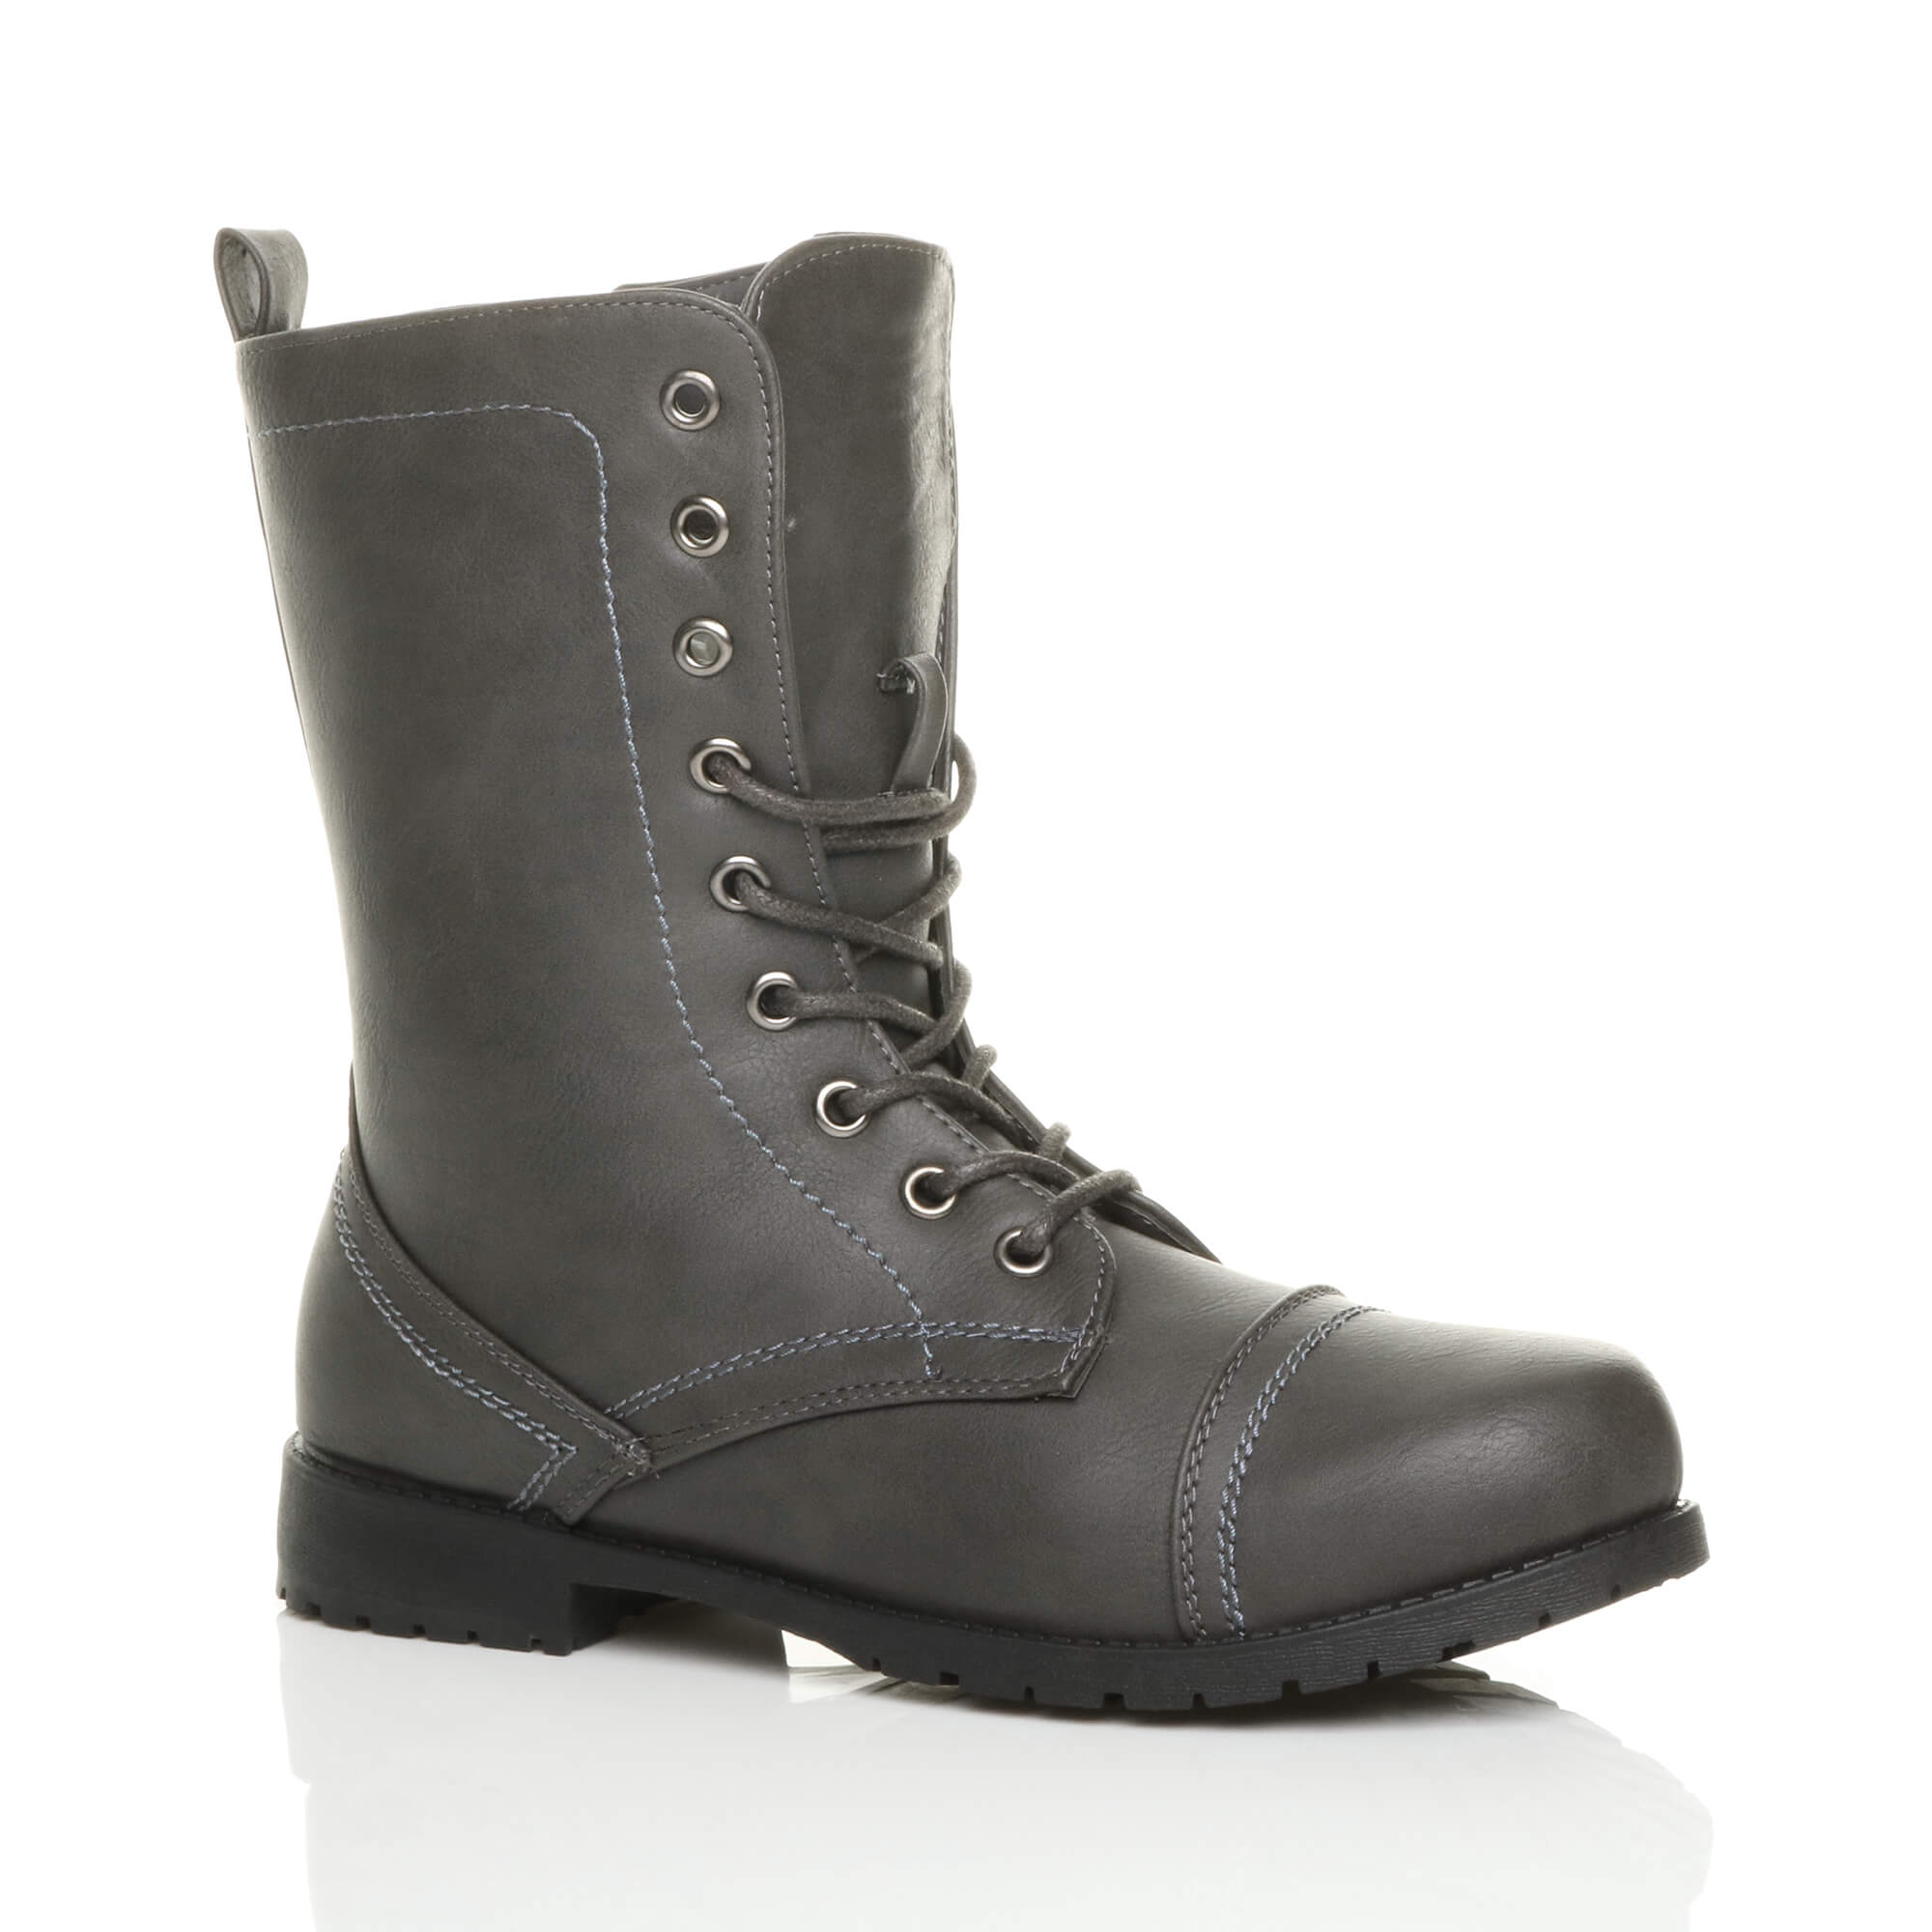 WOMENS-LADIES-LOW-HEEL-LACE-UP-ZIP-ARMY-COMBAT-BIKER-MILITARY-ANKLE-BOOTS-SIZE